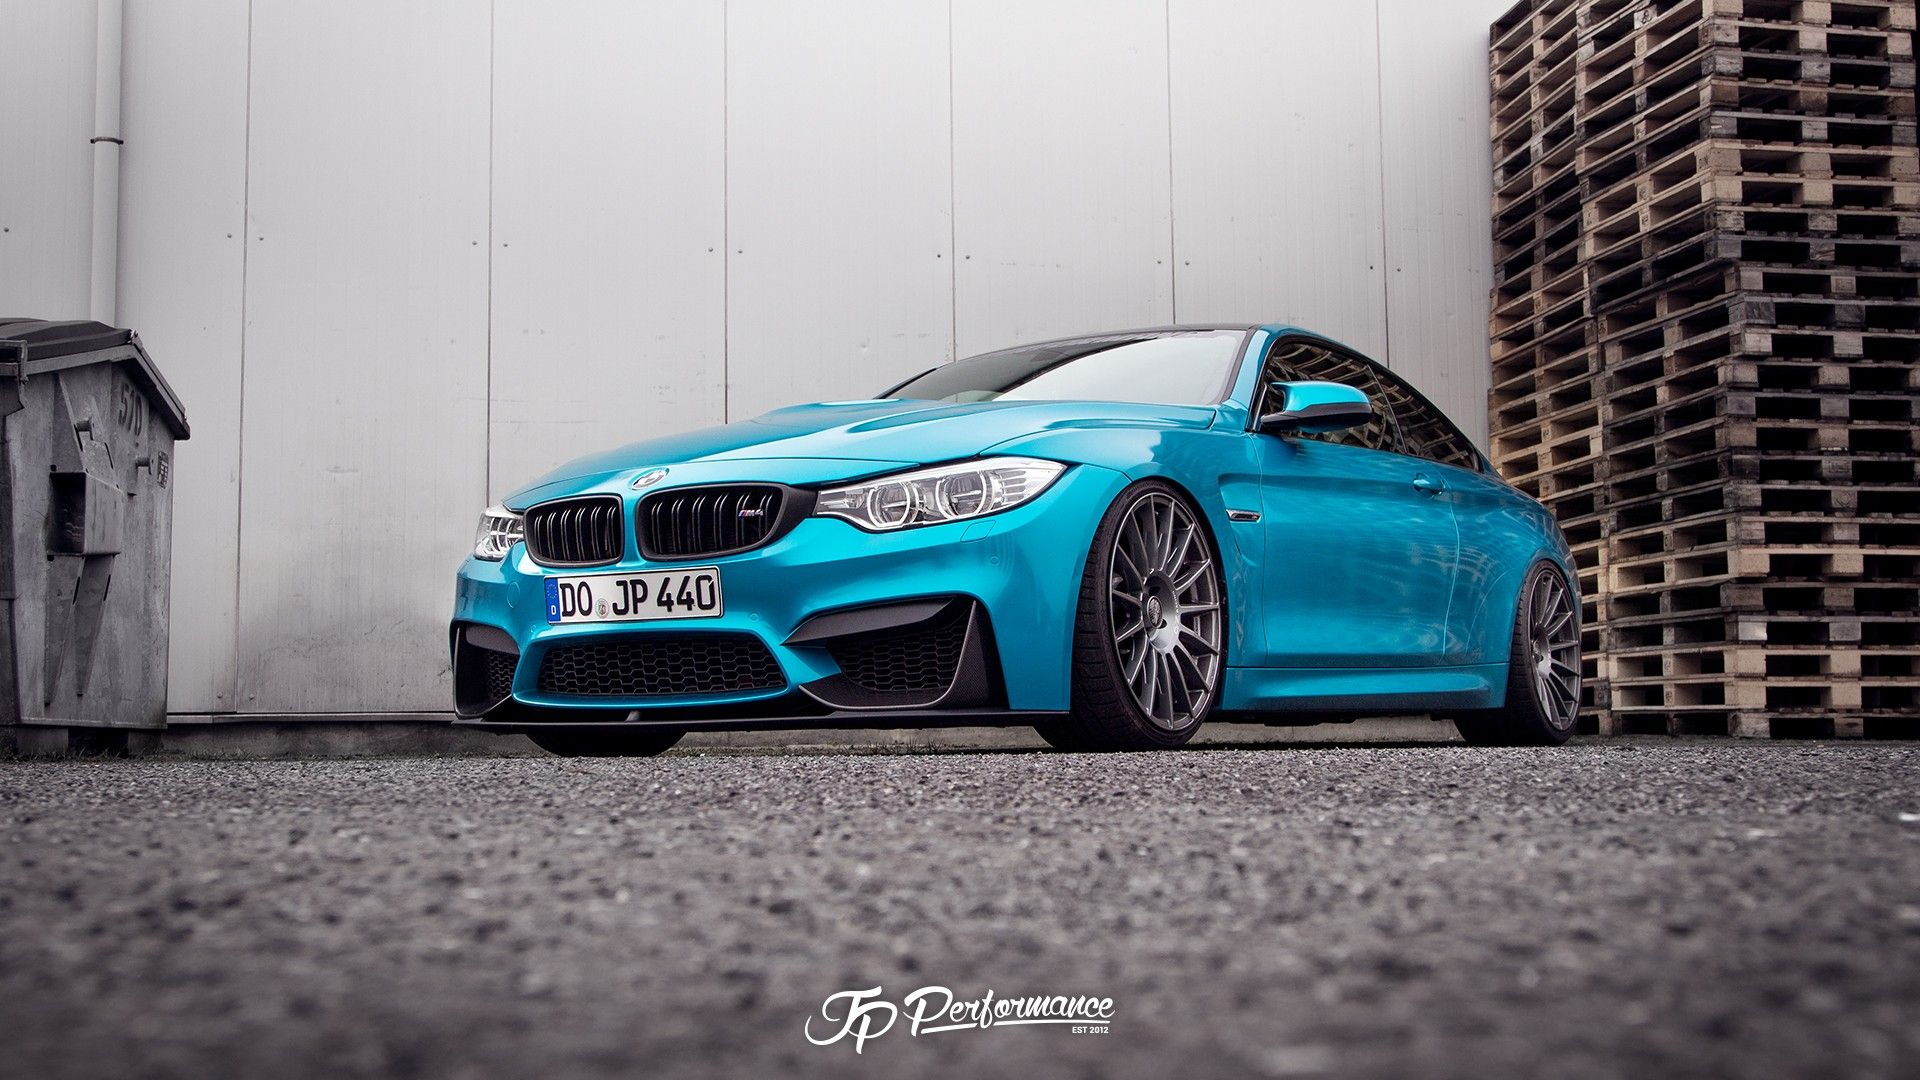 general 1920x1080 bmw jp performance bmw m4 car blue cars. Black Bedroom Furniture Sets. Home Design Ideas